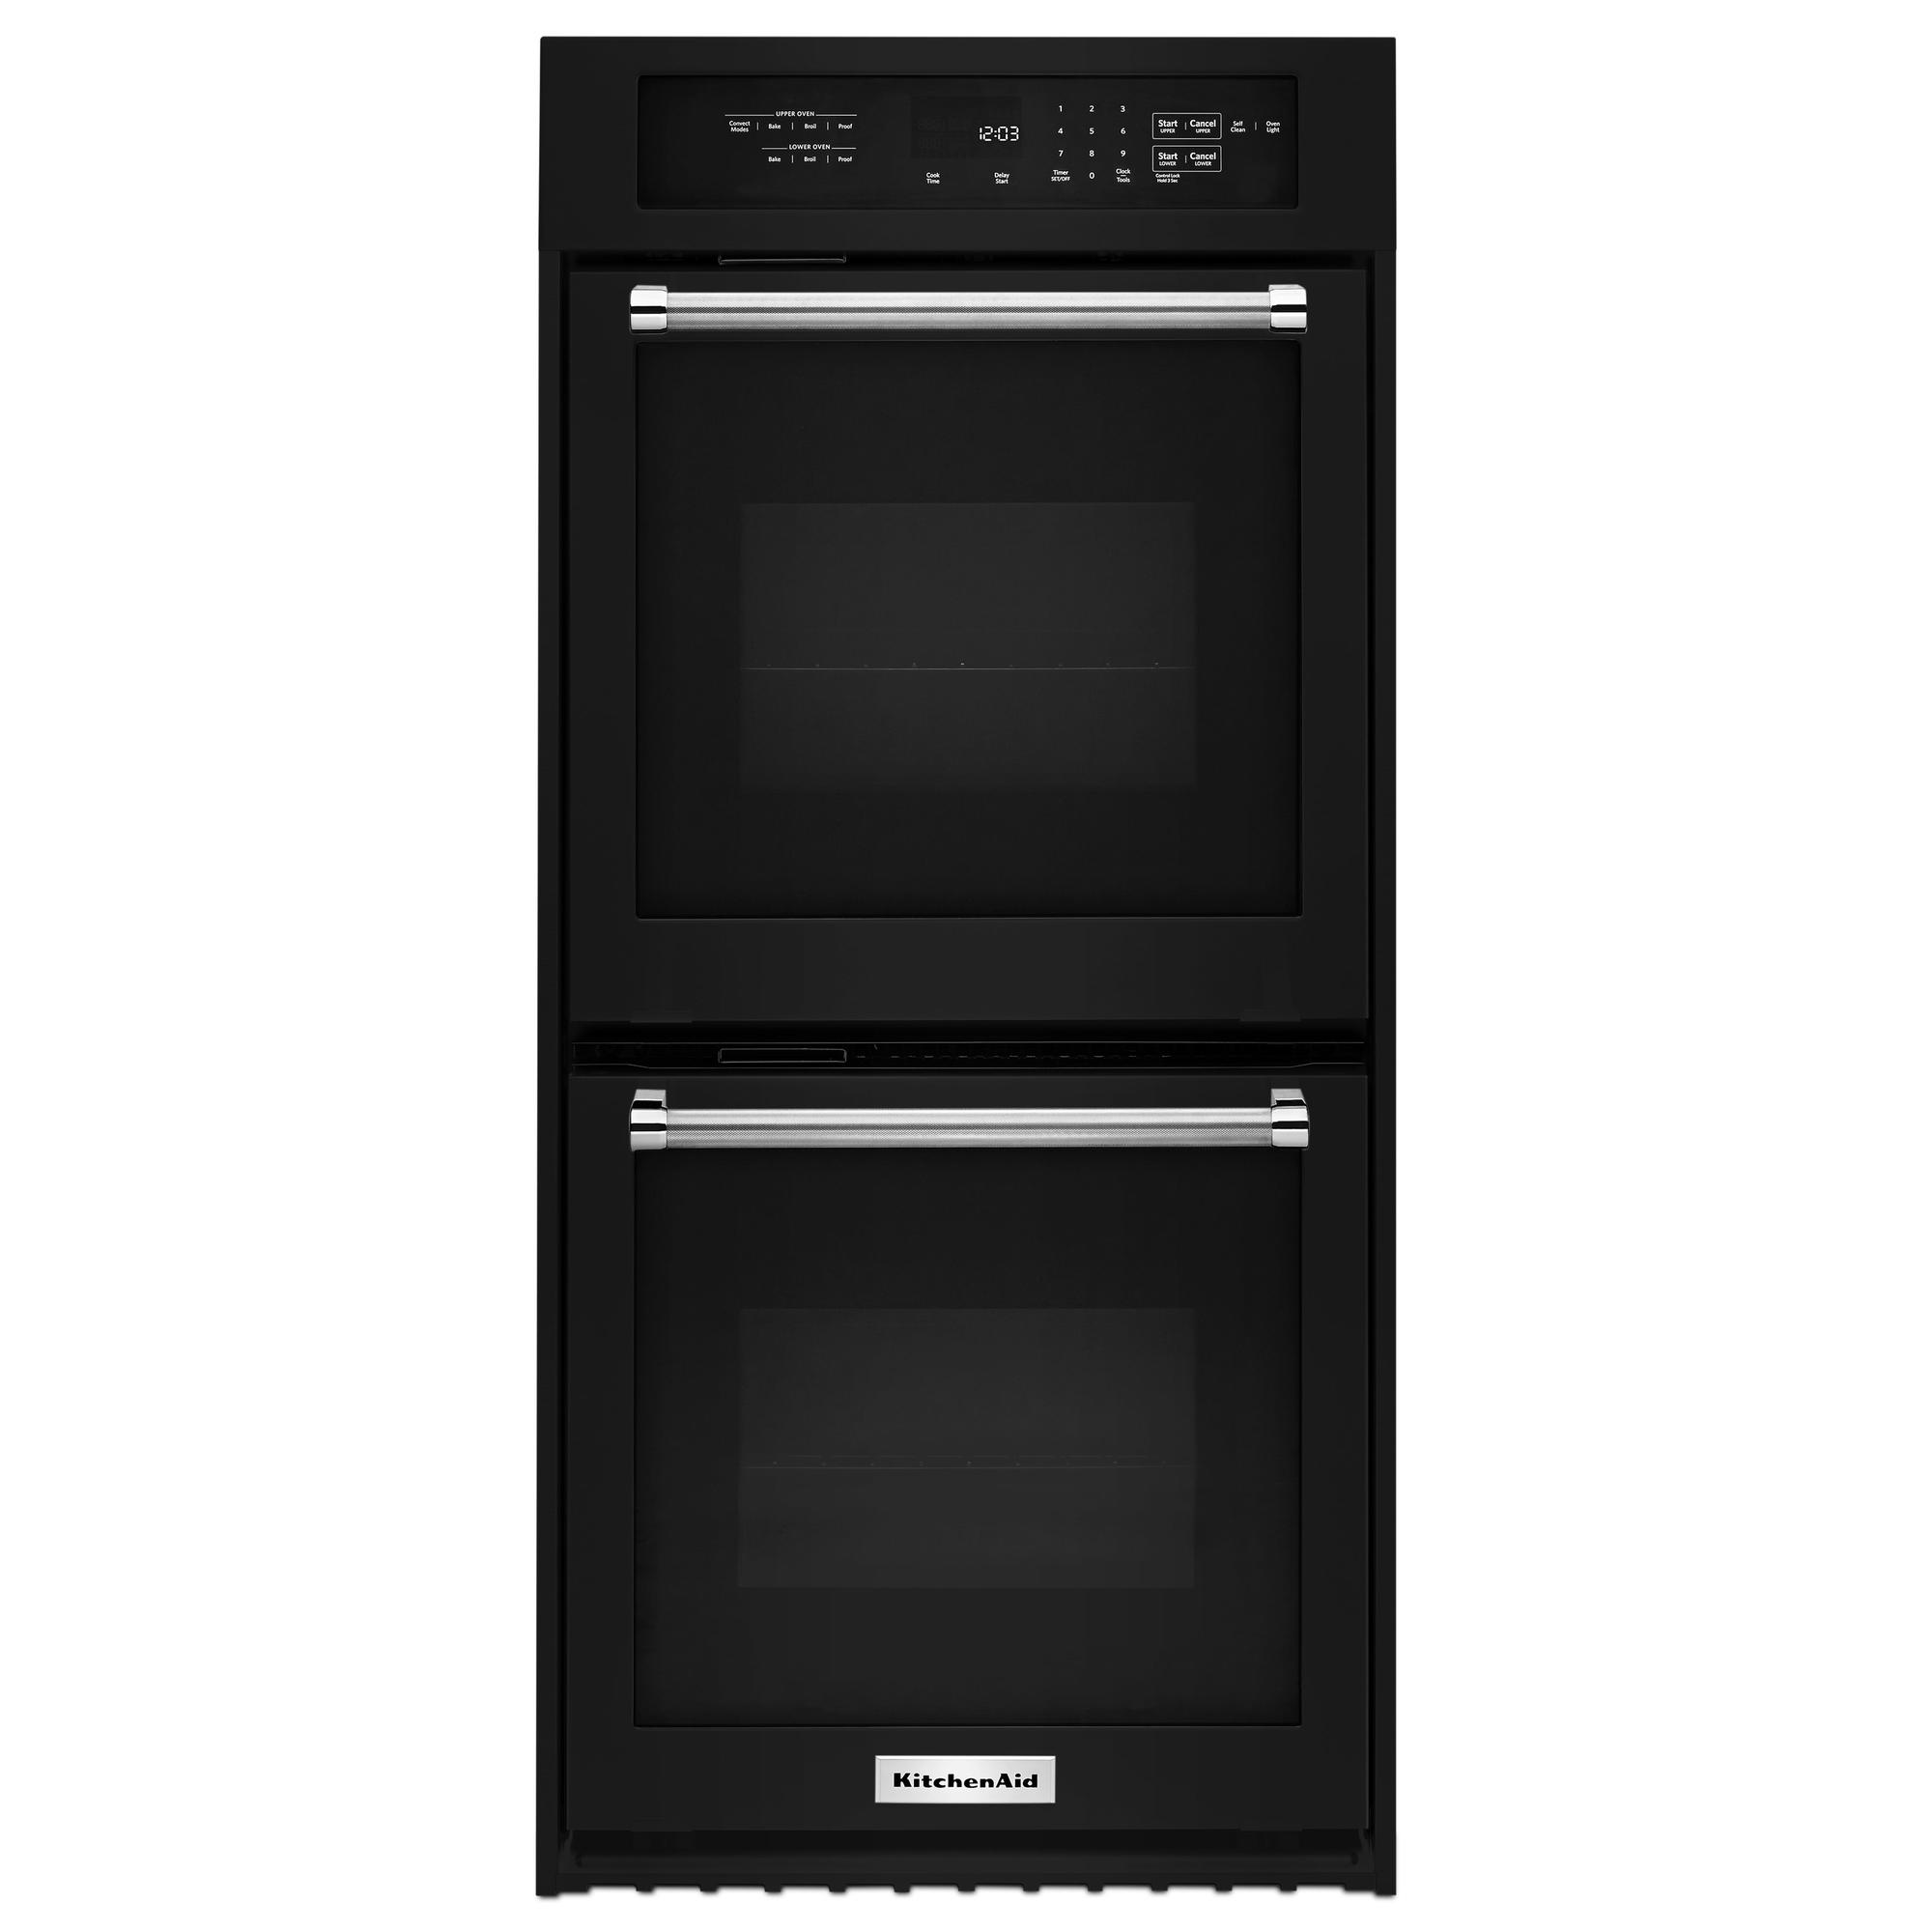 KitchenAid KODC304EBL 24 Double Wall Oven w/ True Convection - Black